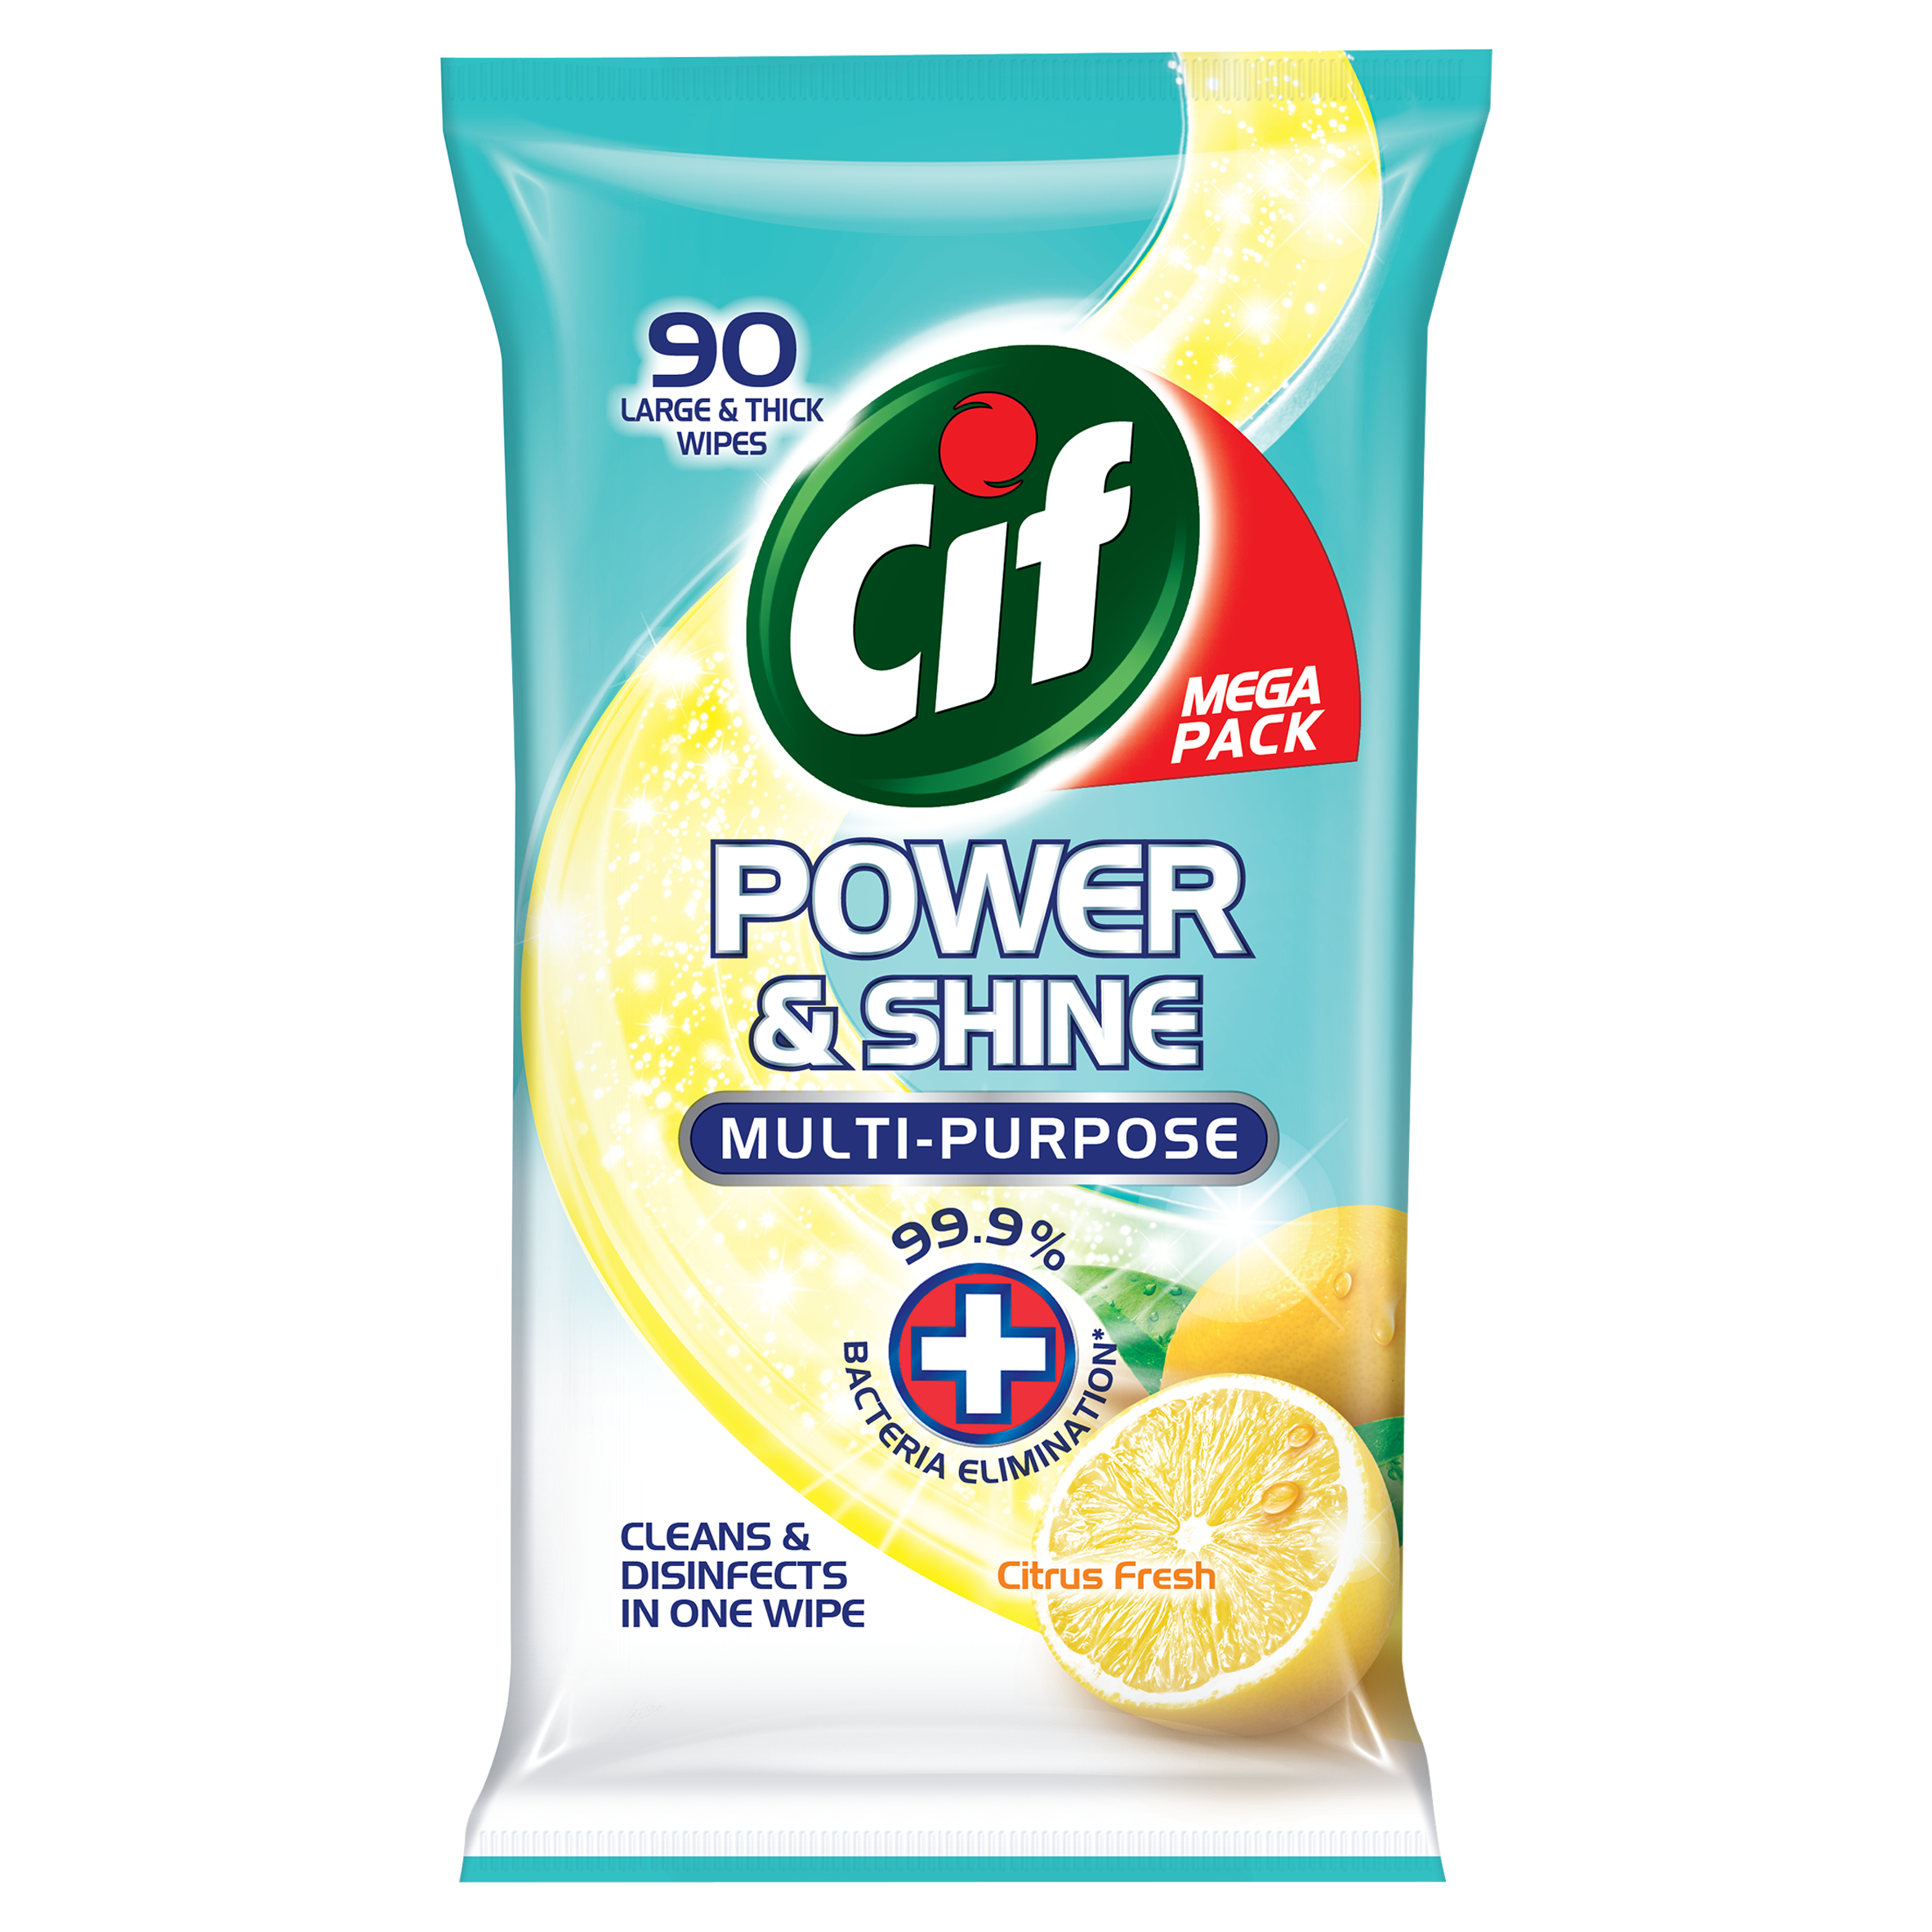 67301896_Cif Wipes Citrus Fresh copy